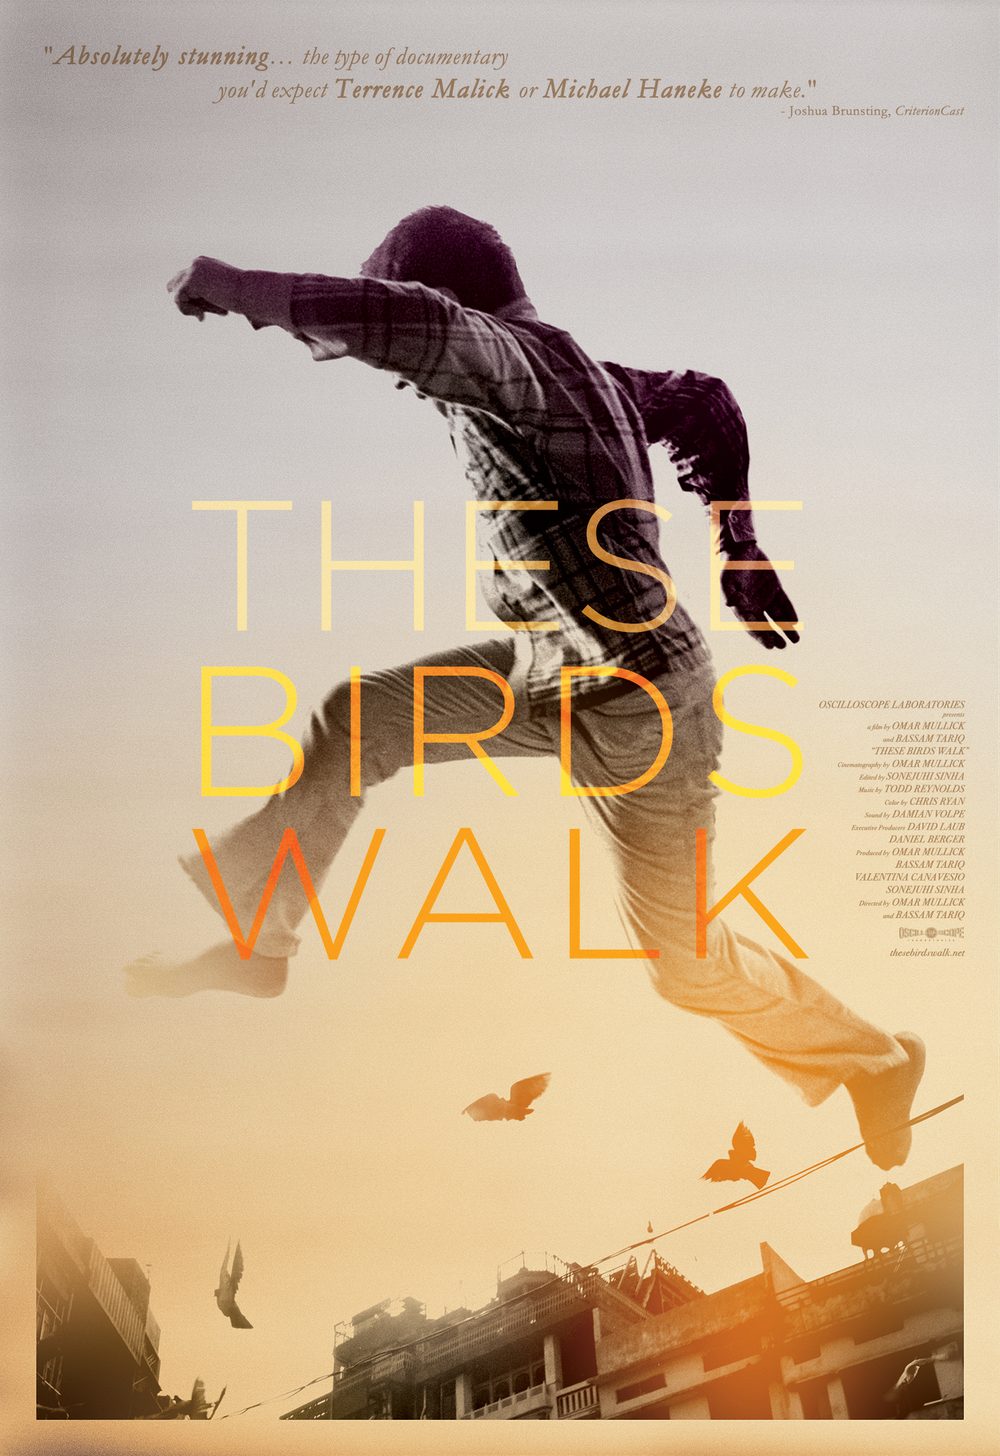 thesebirdswalk.jpg